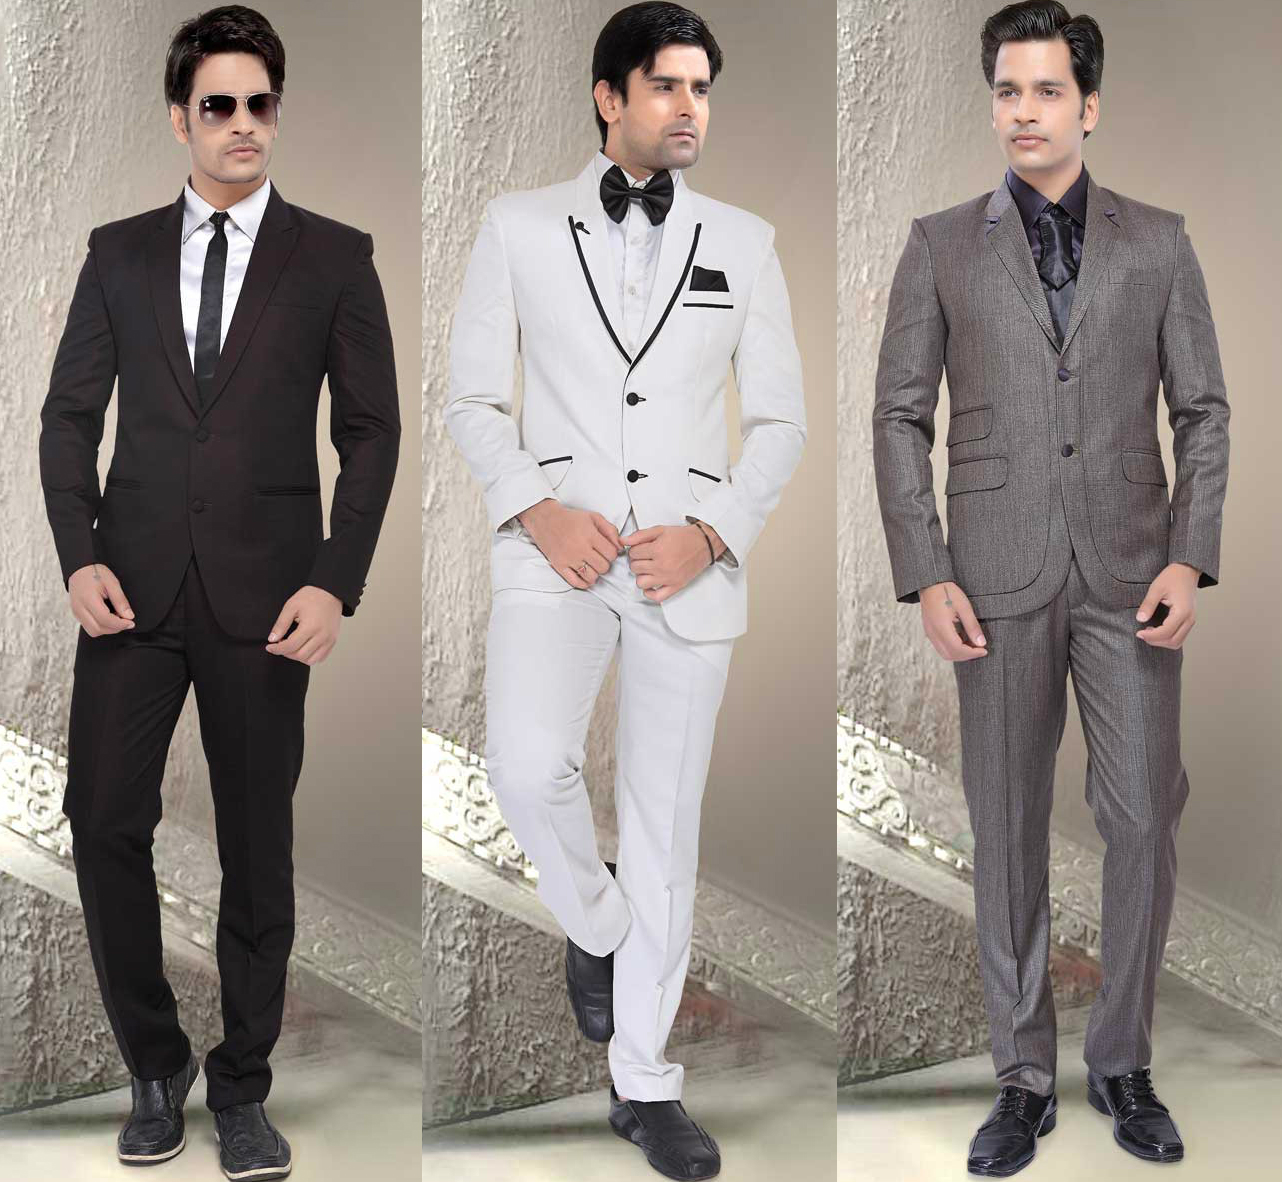 Choosing The Correct Wedding Attire Can Be Quite Straightforward For Some Men While Others Task Seem Daunting